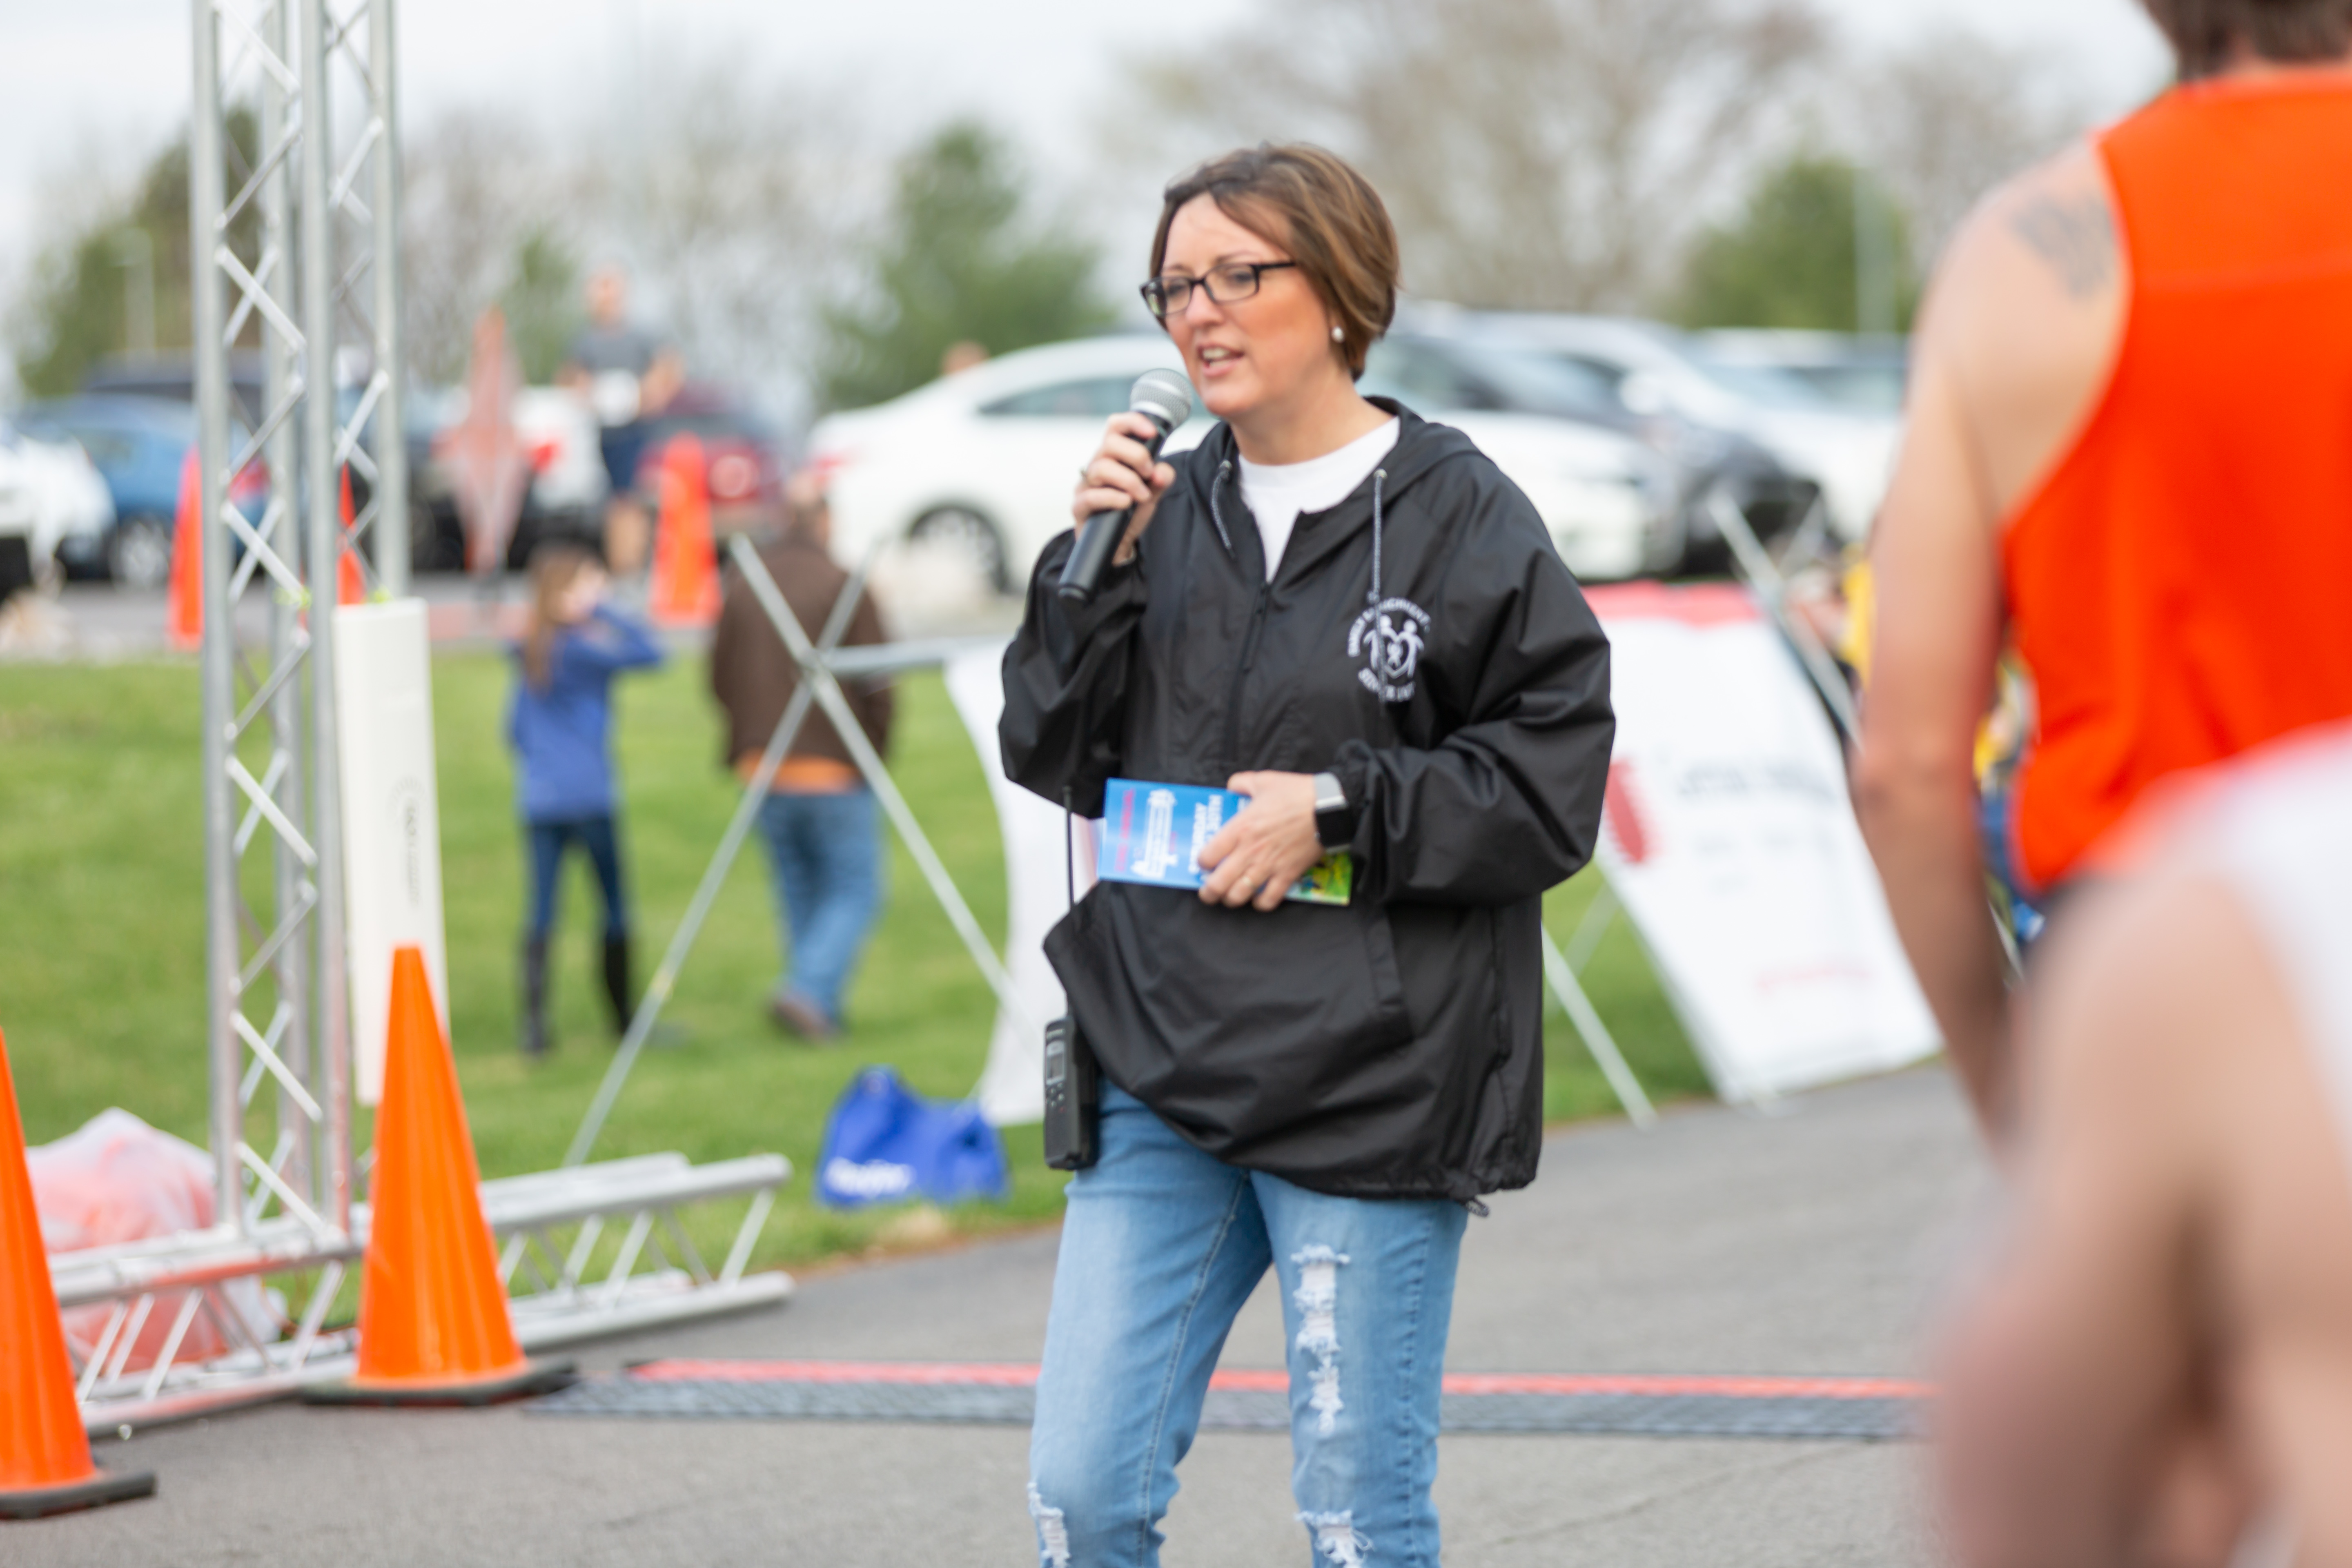 FEC Run2019 (57 of 312)